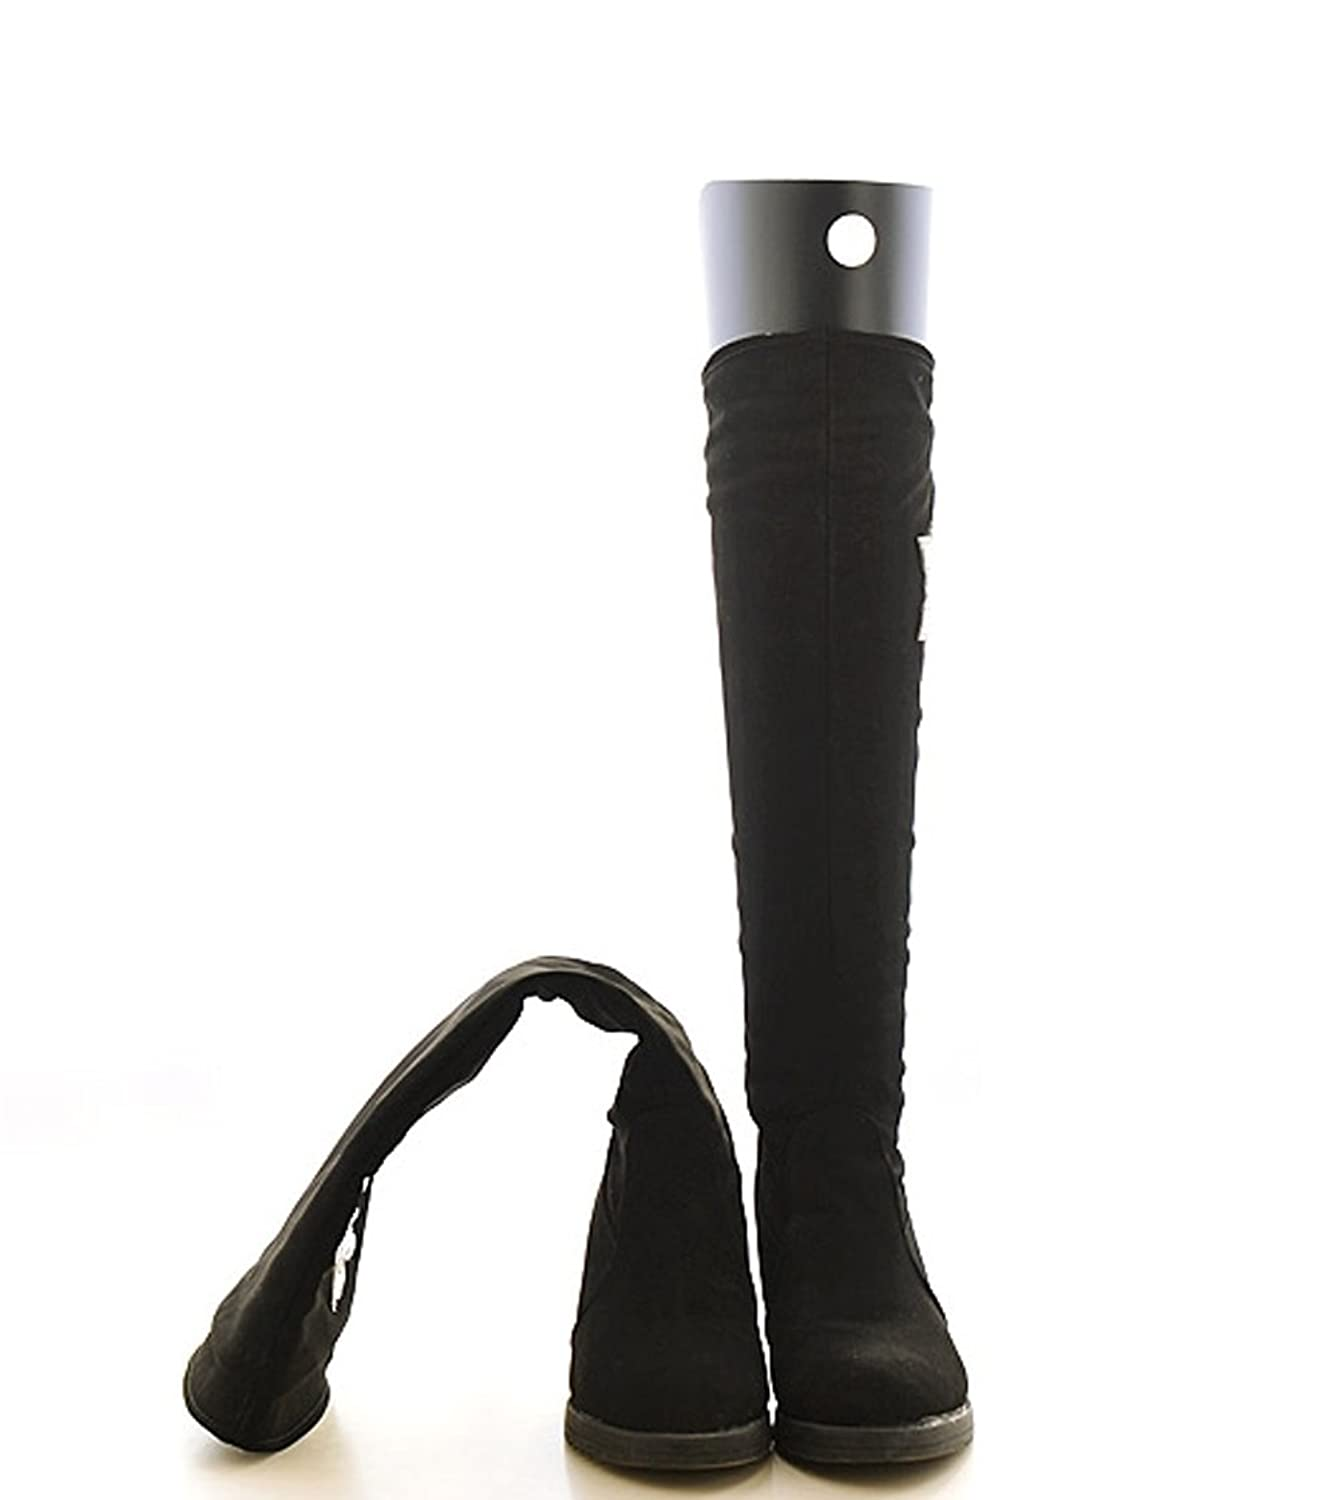 cd24970abb8 2Pairs Shoe Trees Tall Short Boot Shaper Tree Inserts Knee High Shoes Thigh  Boot Holder Support